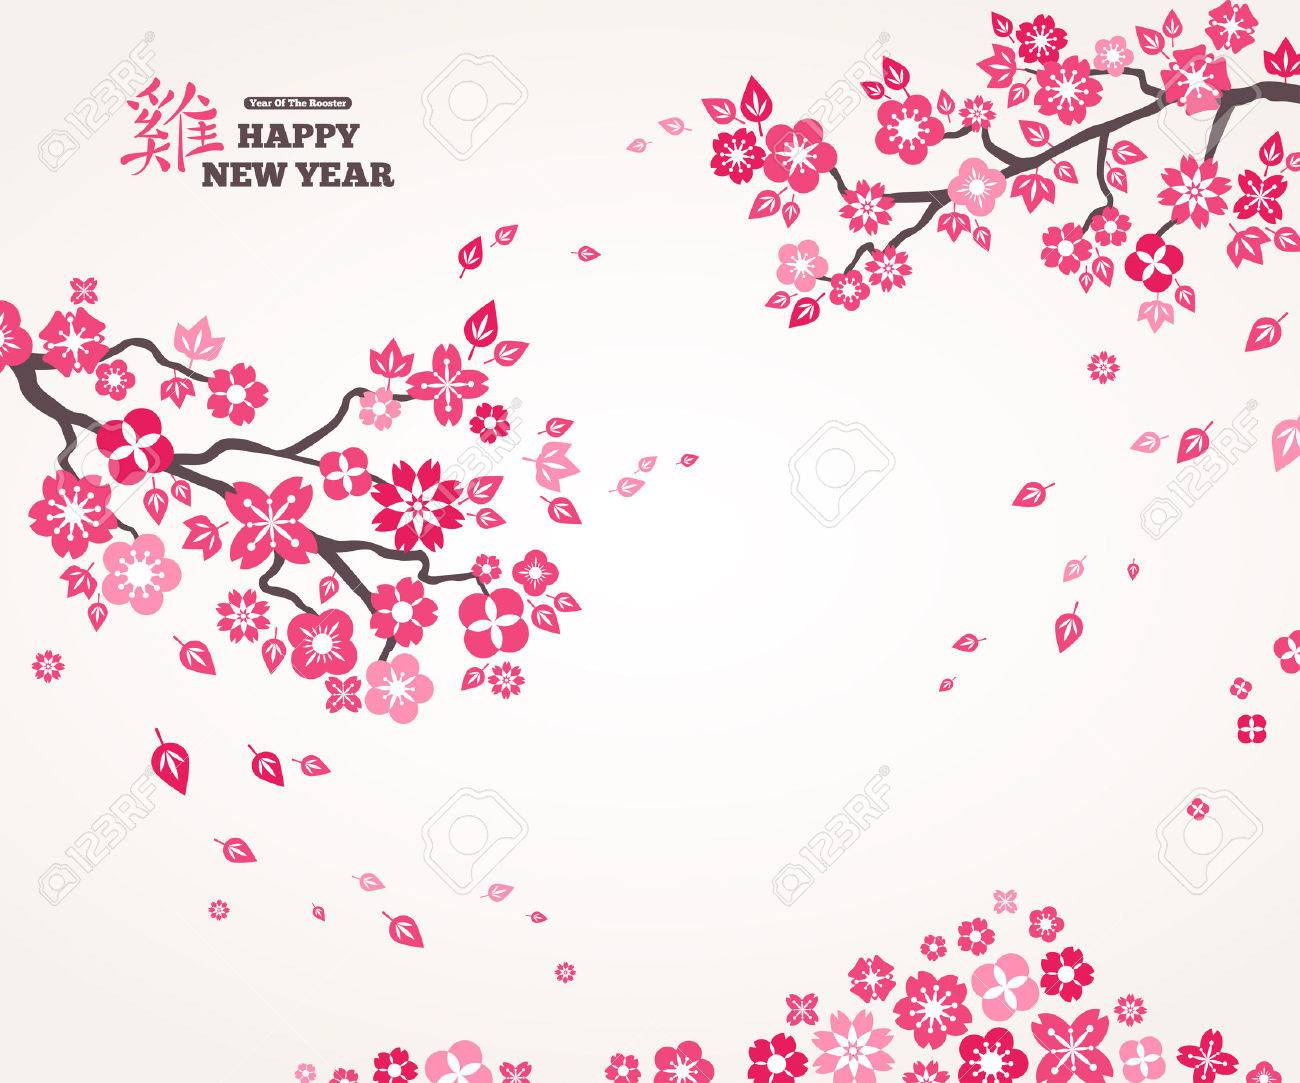 2017 chinese new year greeting card hieroglyph rooster pink sakura flowers on white background